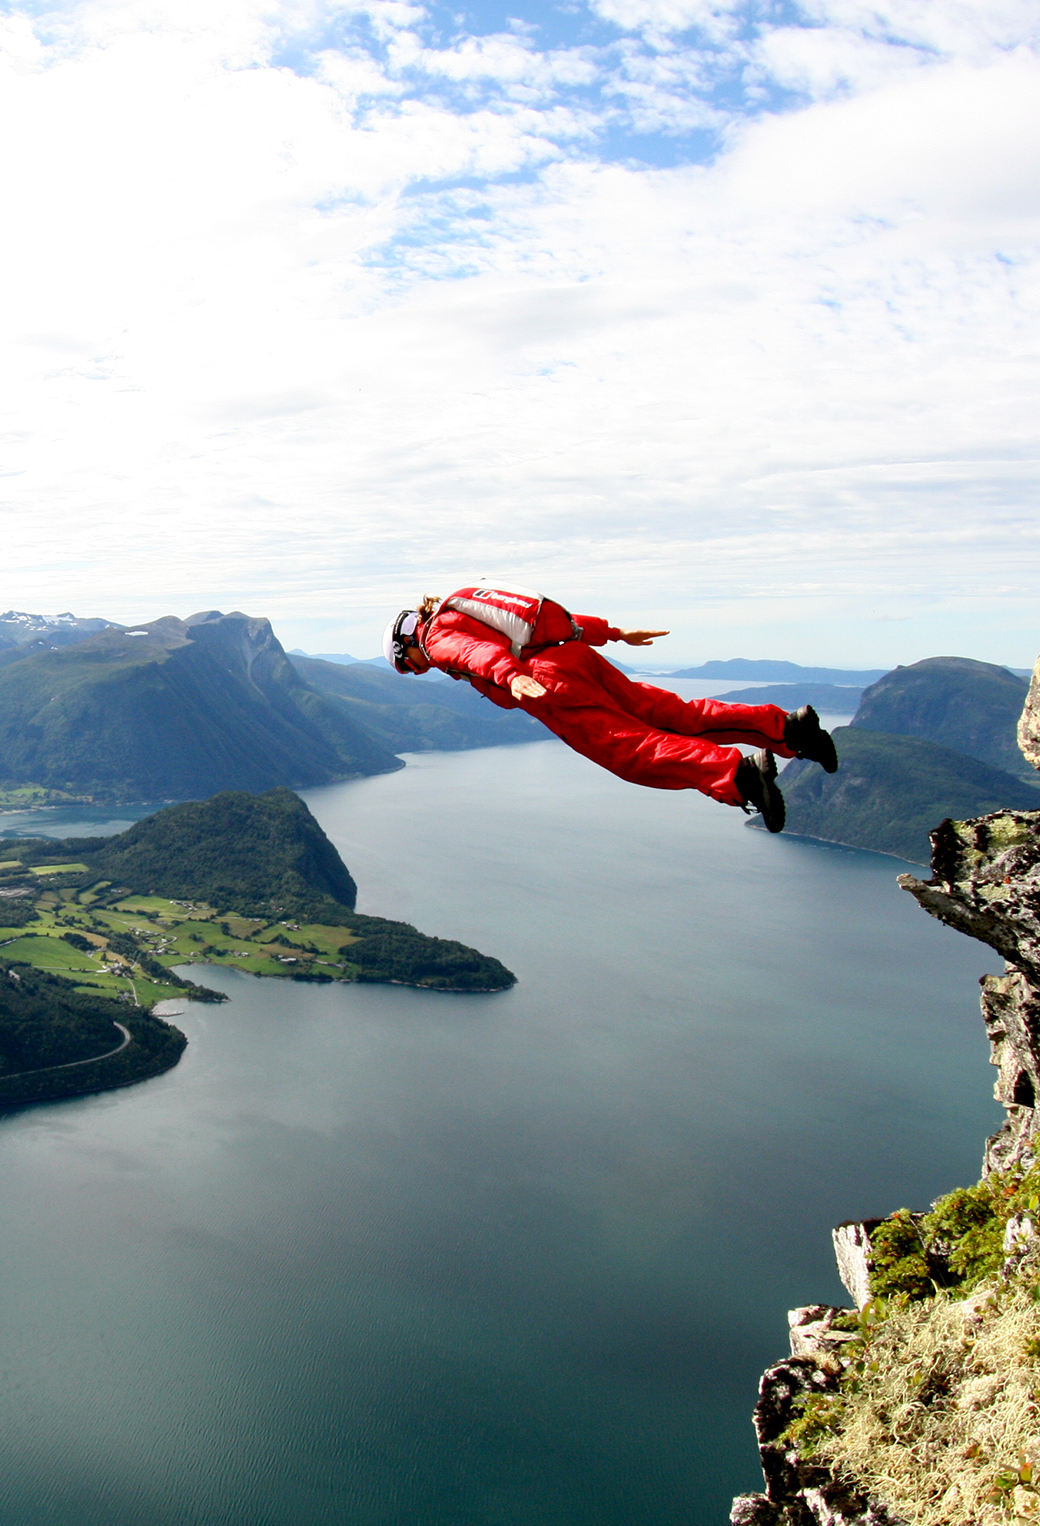 Basejump Gorgeous View 3Wallpapers iphone Parallax Basejump Gorgeous View